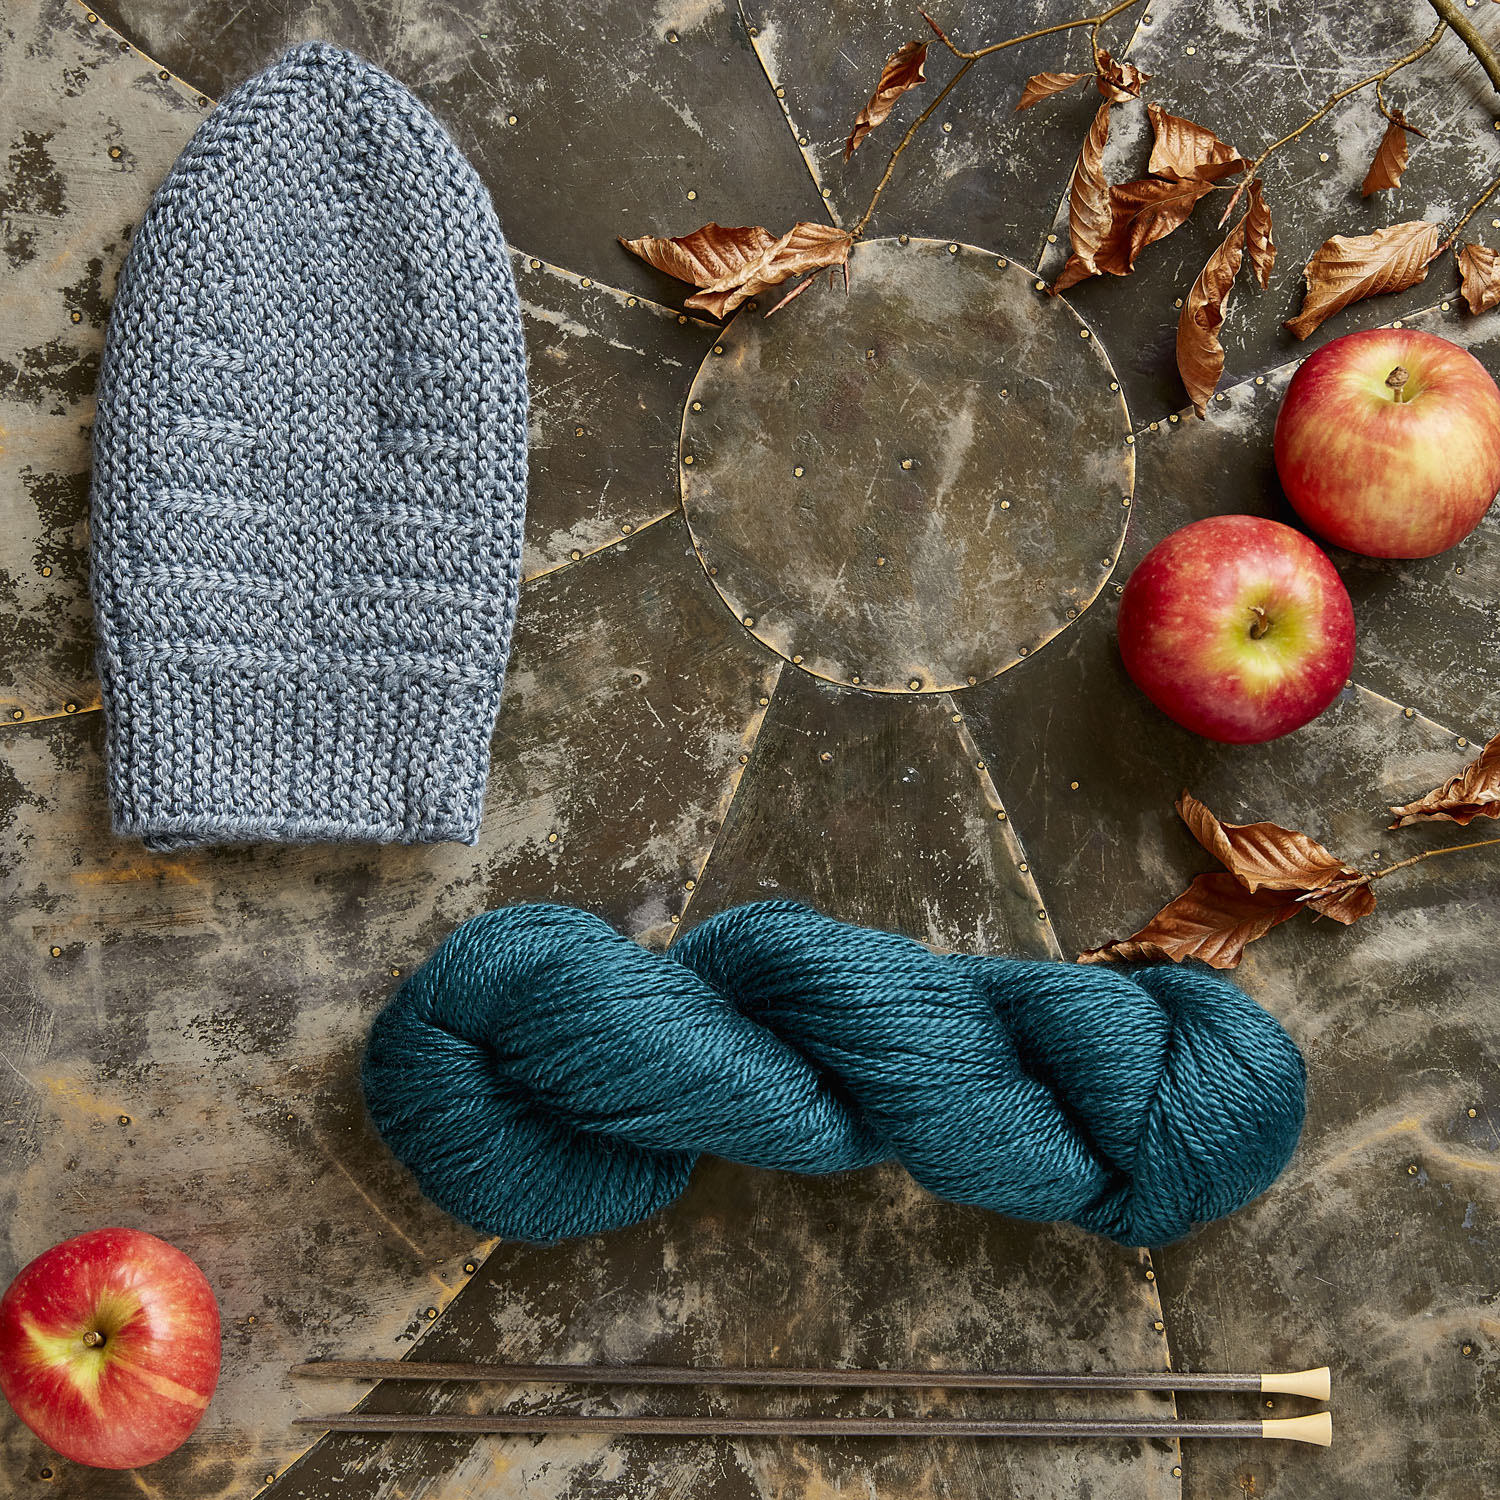 It's feeling very autumnal here, so hats at the ready! Image © Jesse Wild.